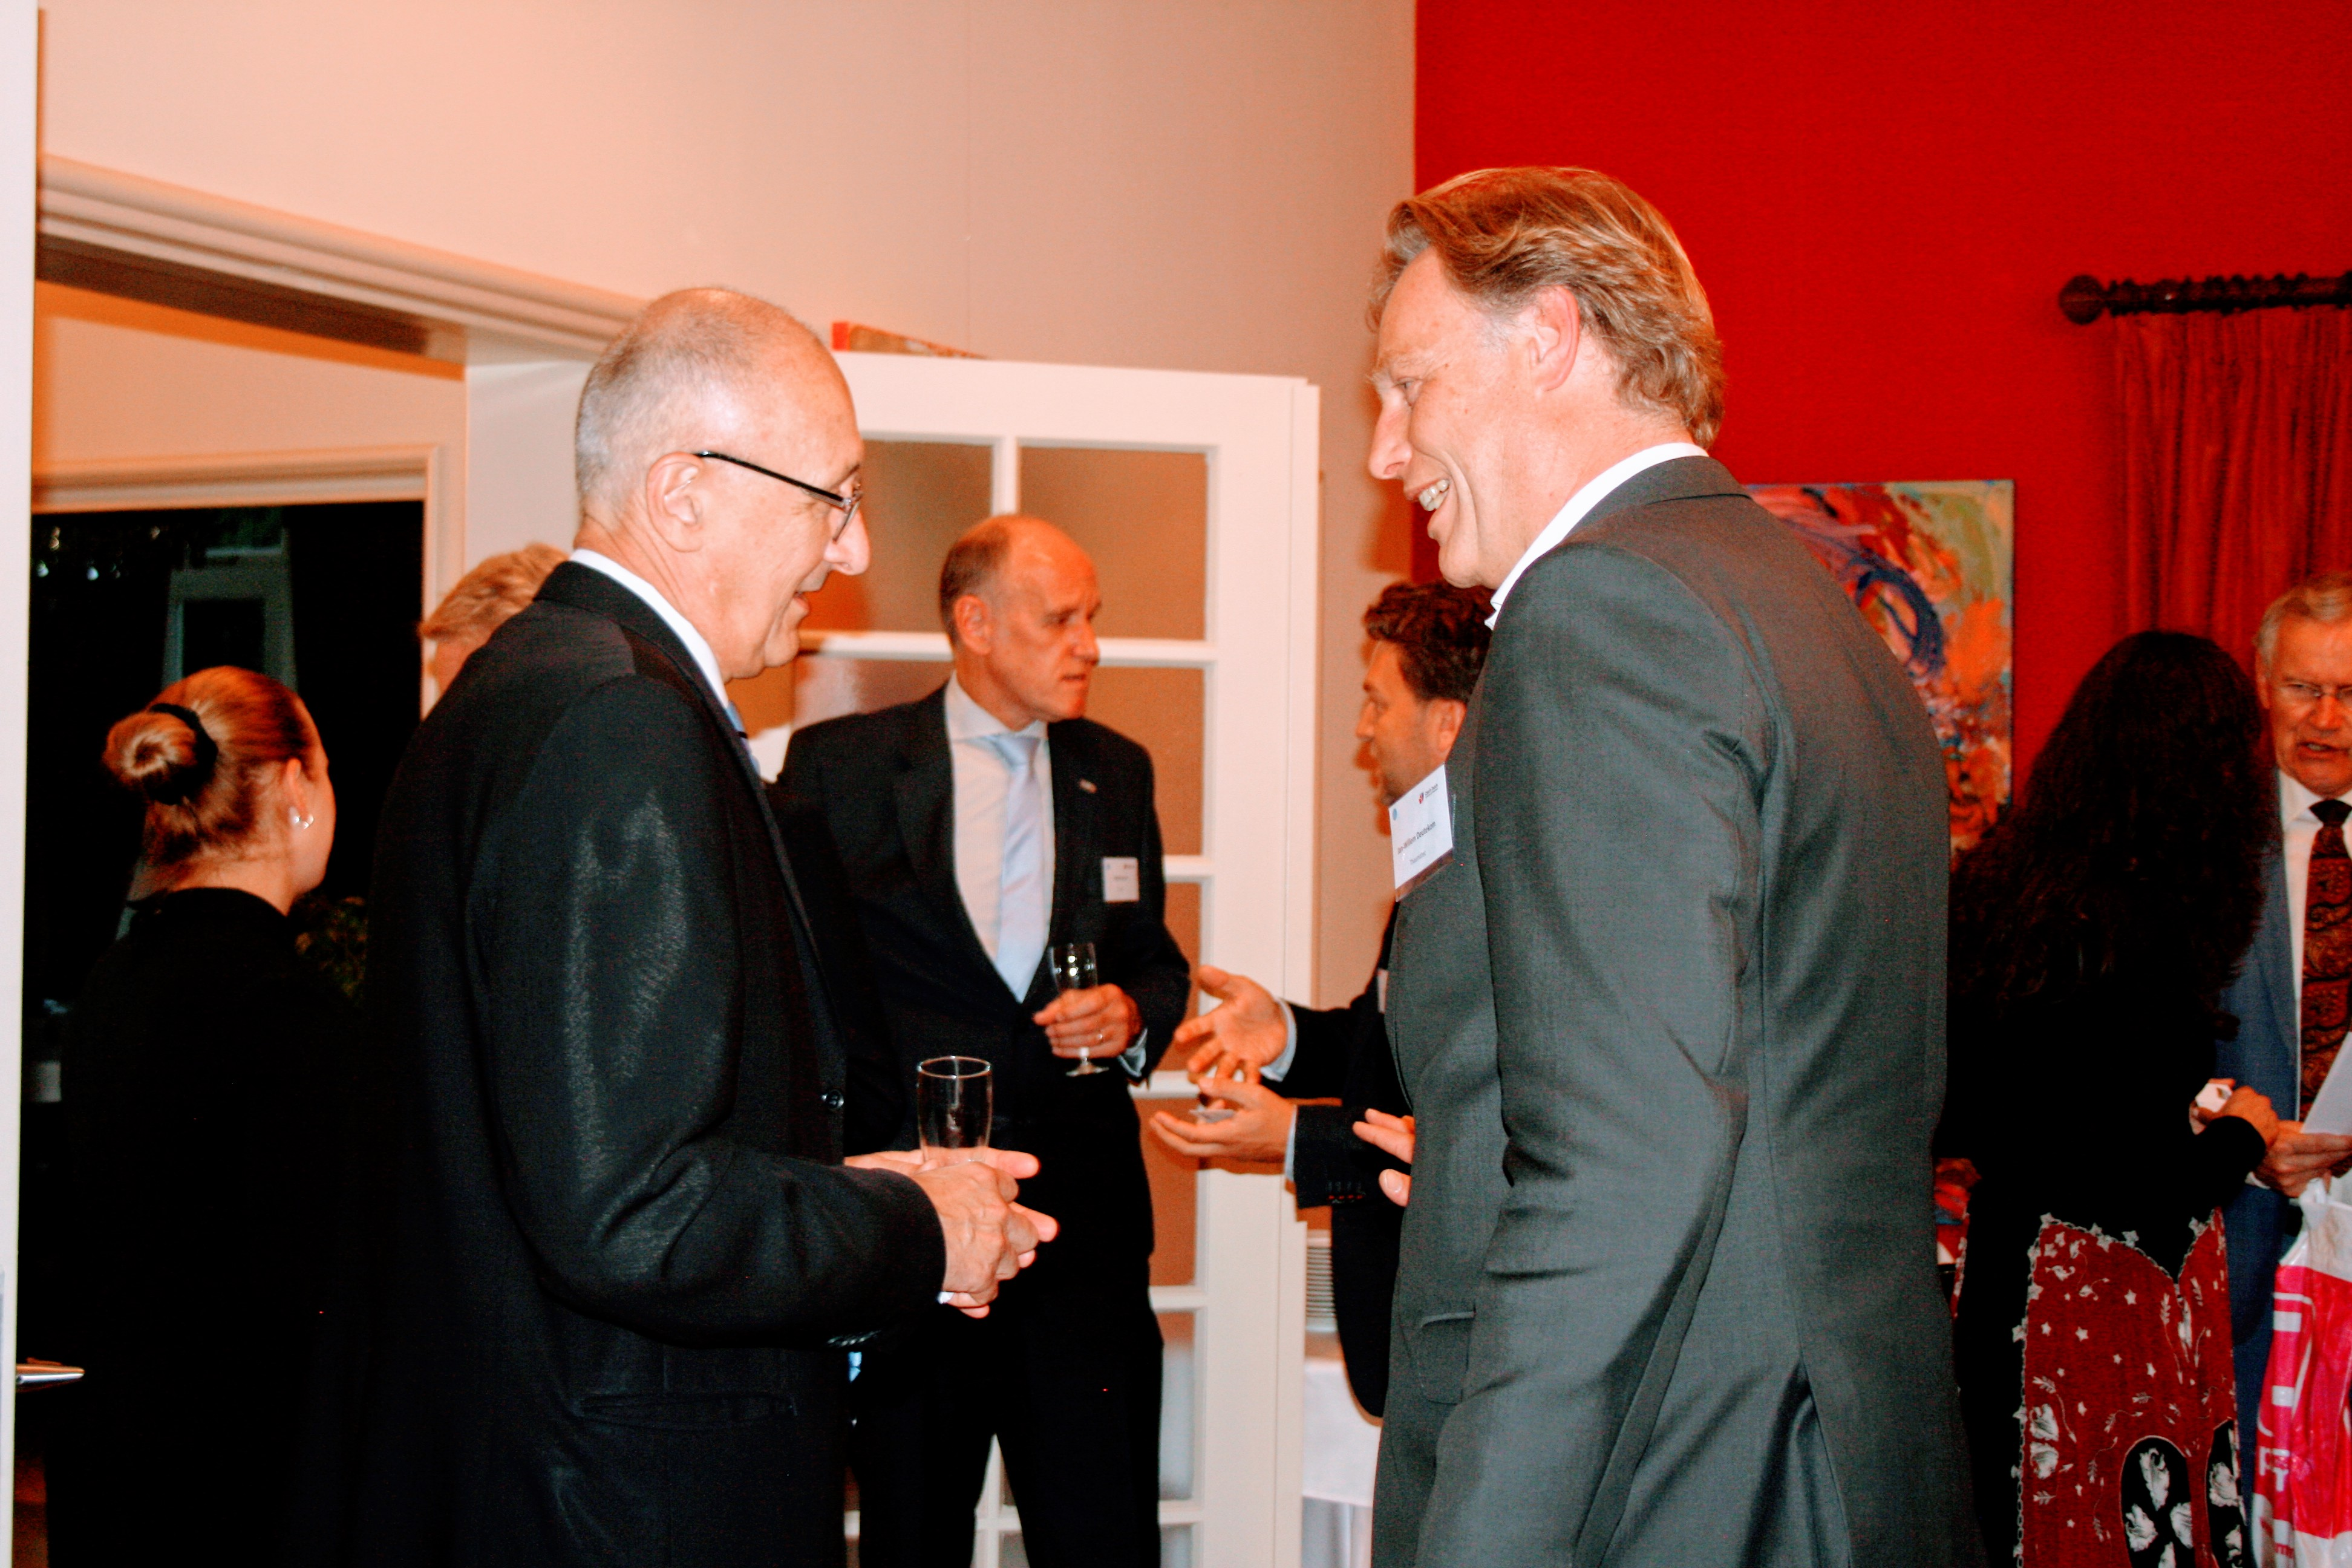 Reception at the Slovak Embassy